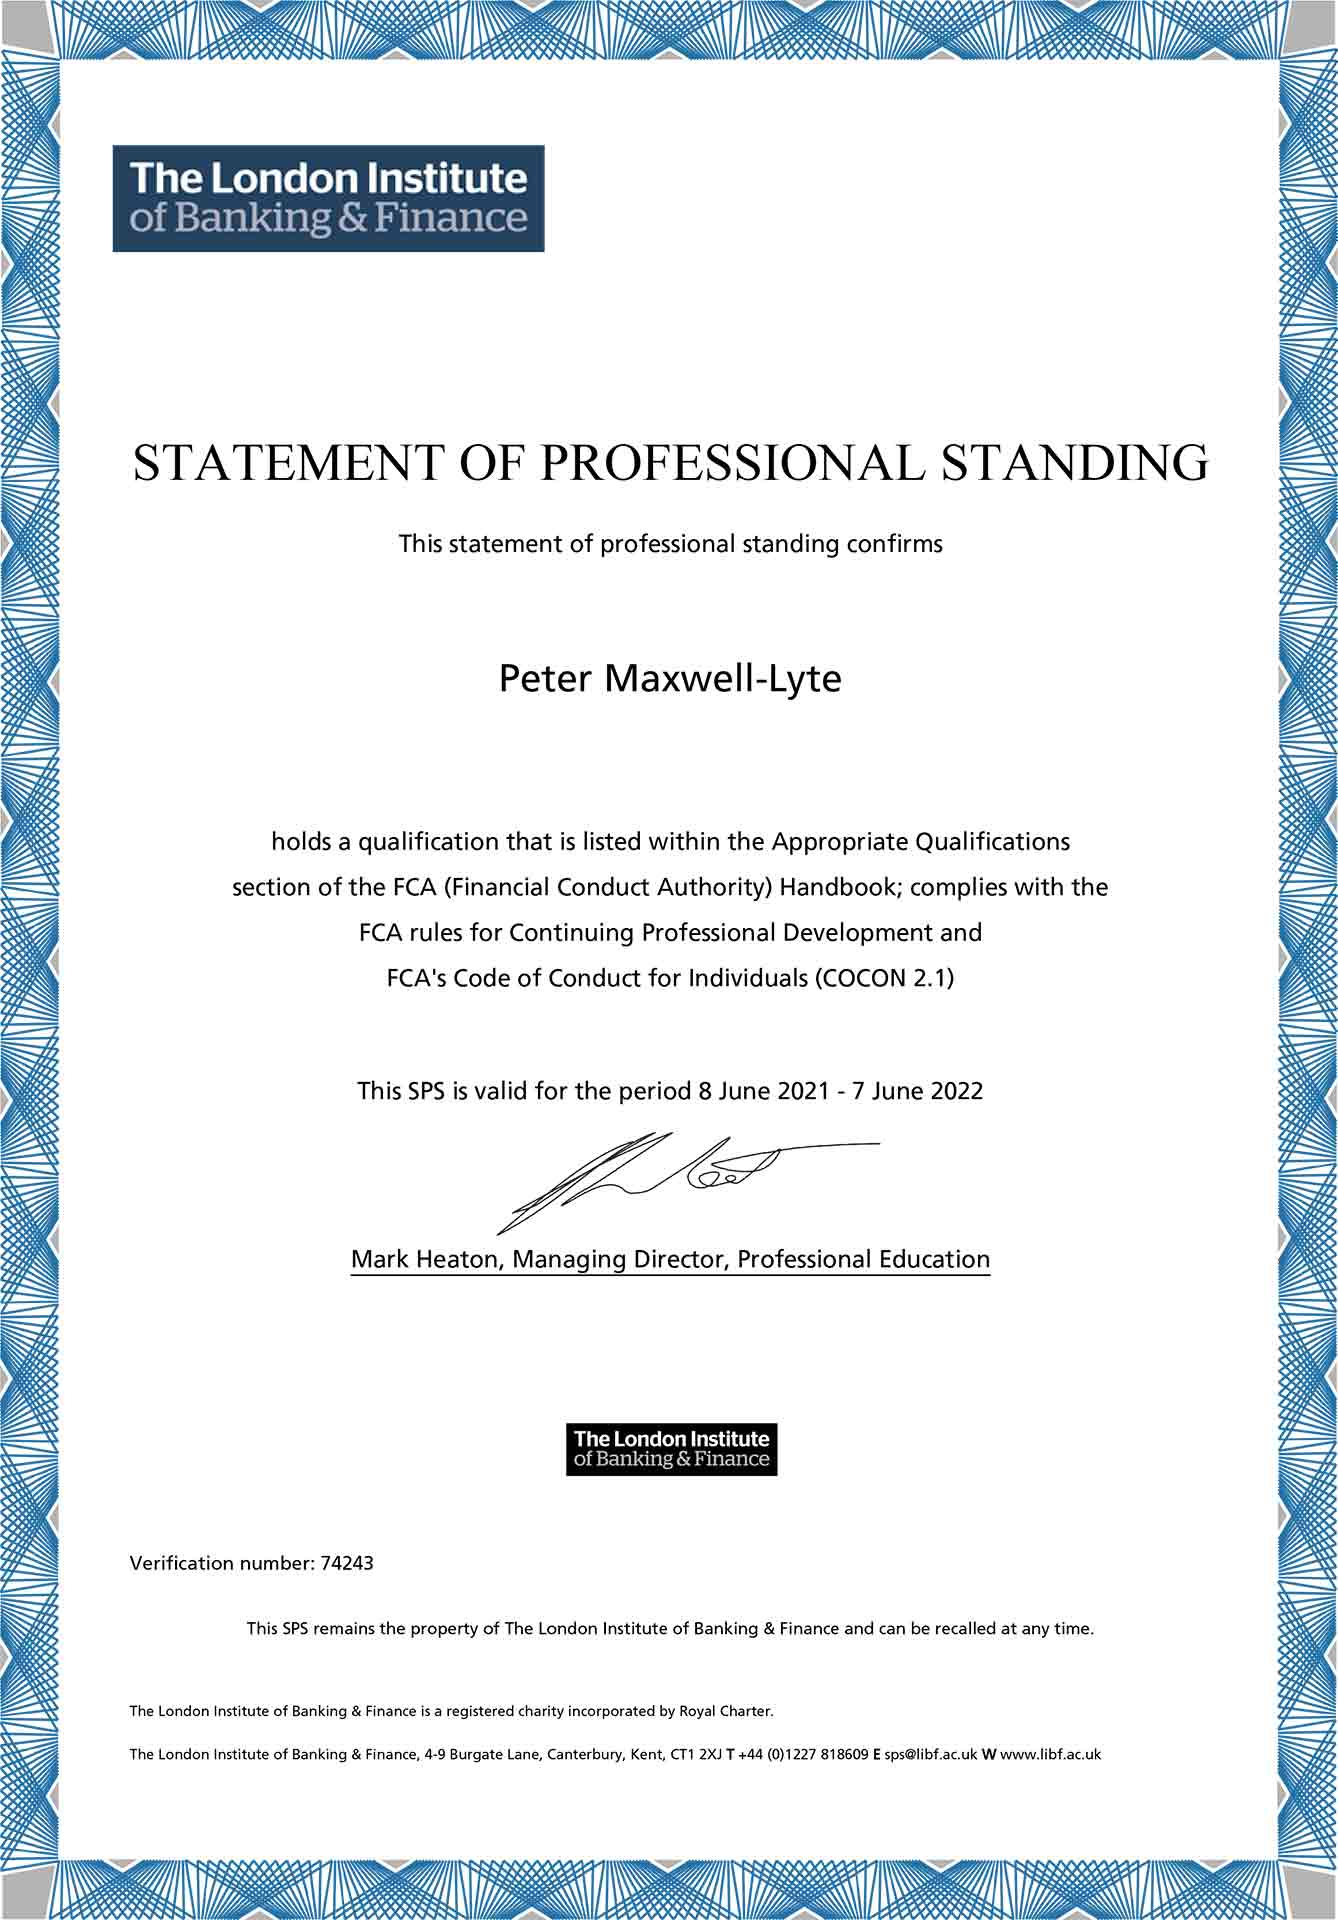 Statement of Professional Standing